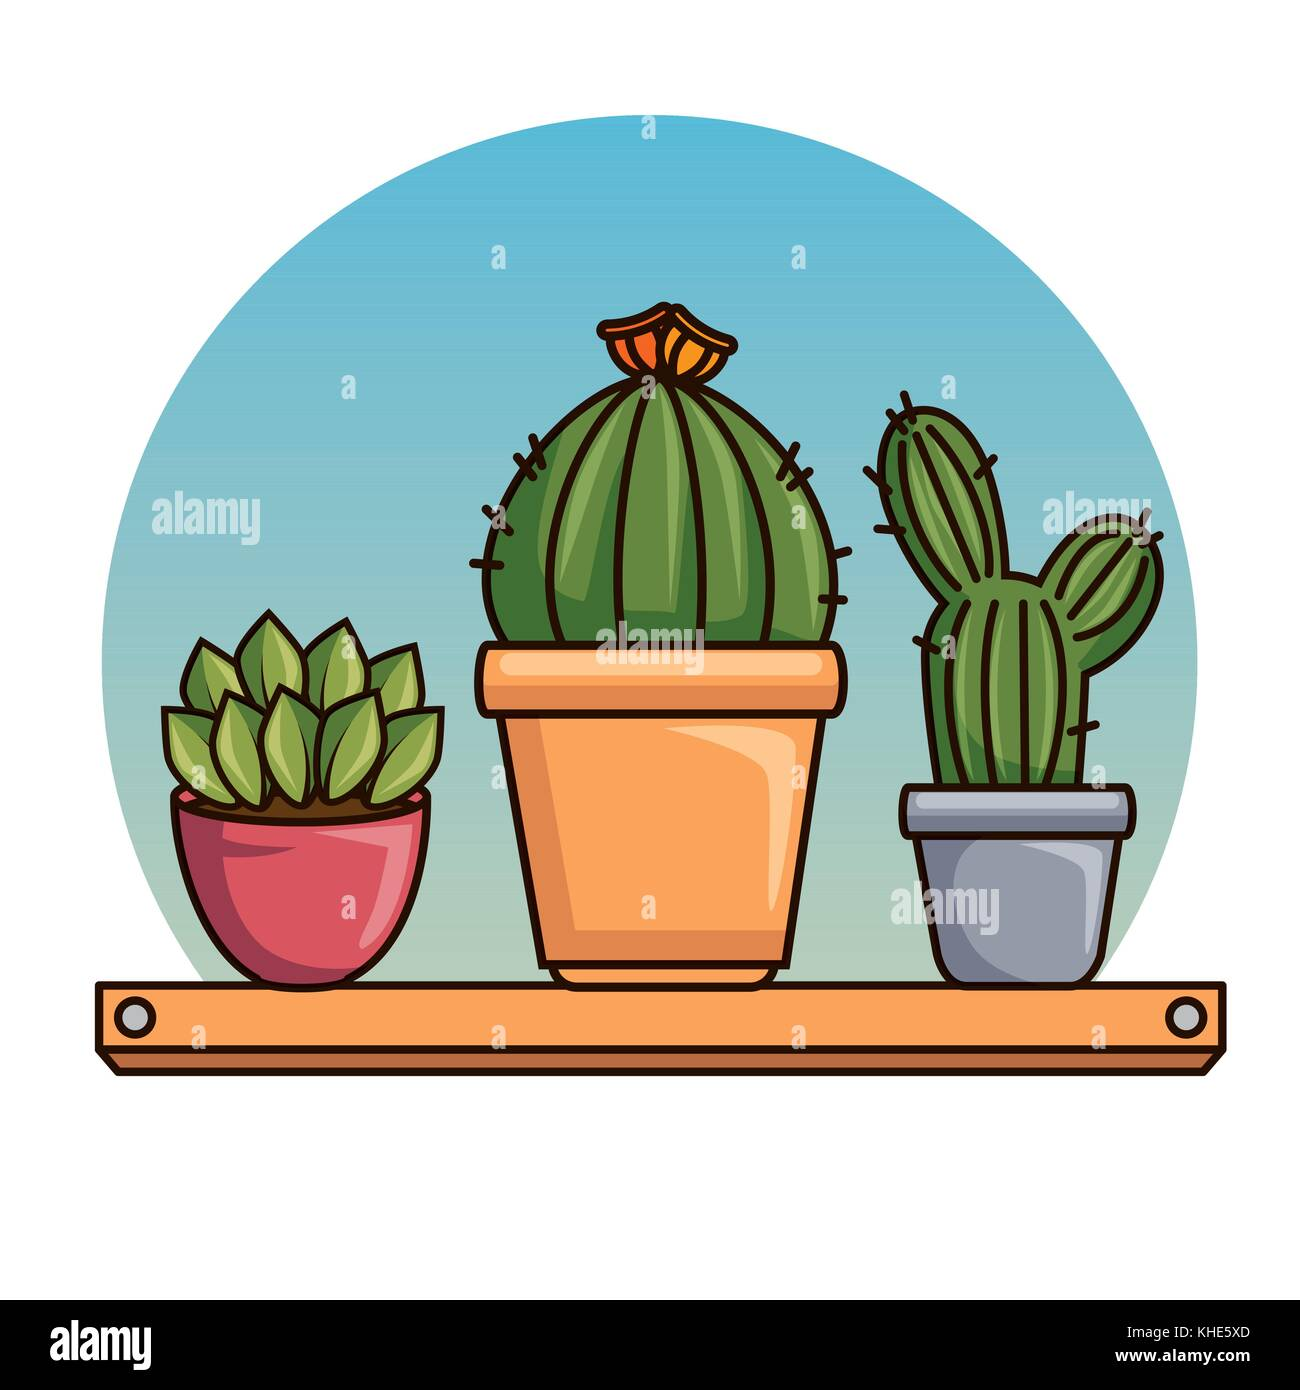 Cactus Cartoon Stock Photos & Cactus Cartoon Stock Images - Alamy